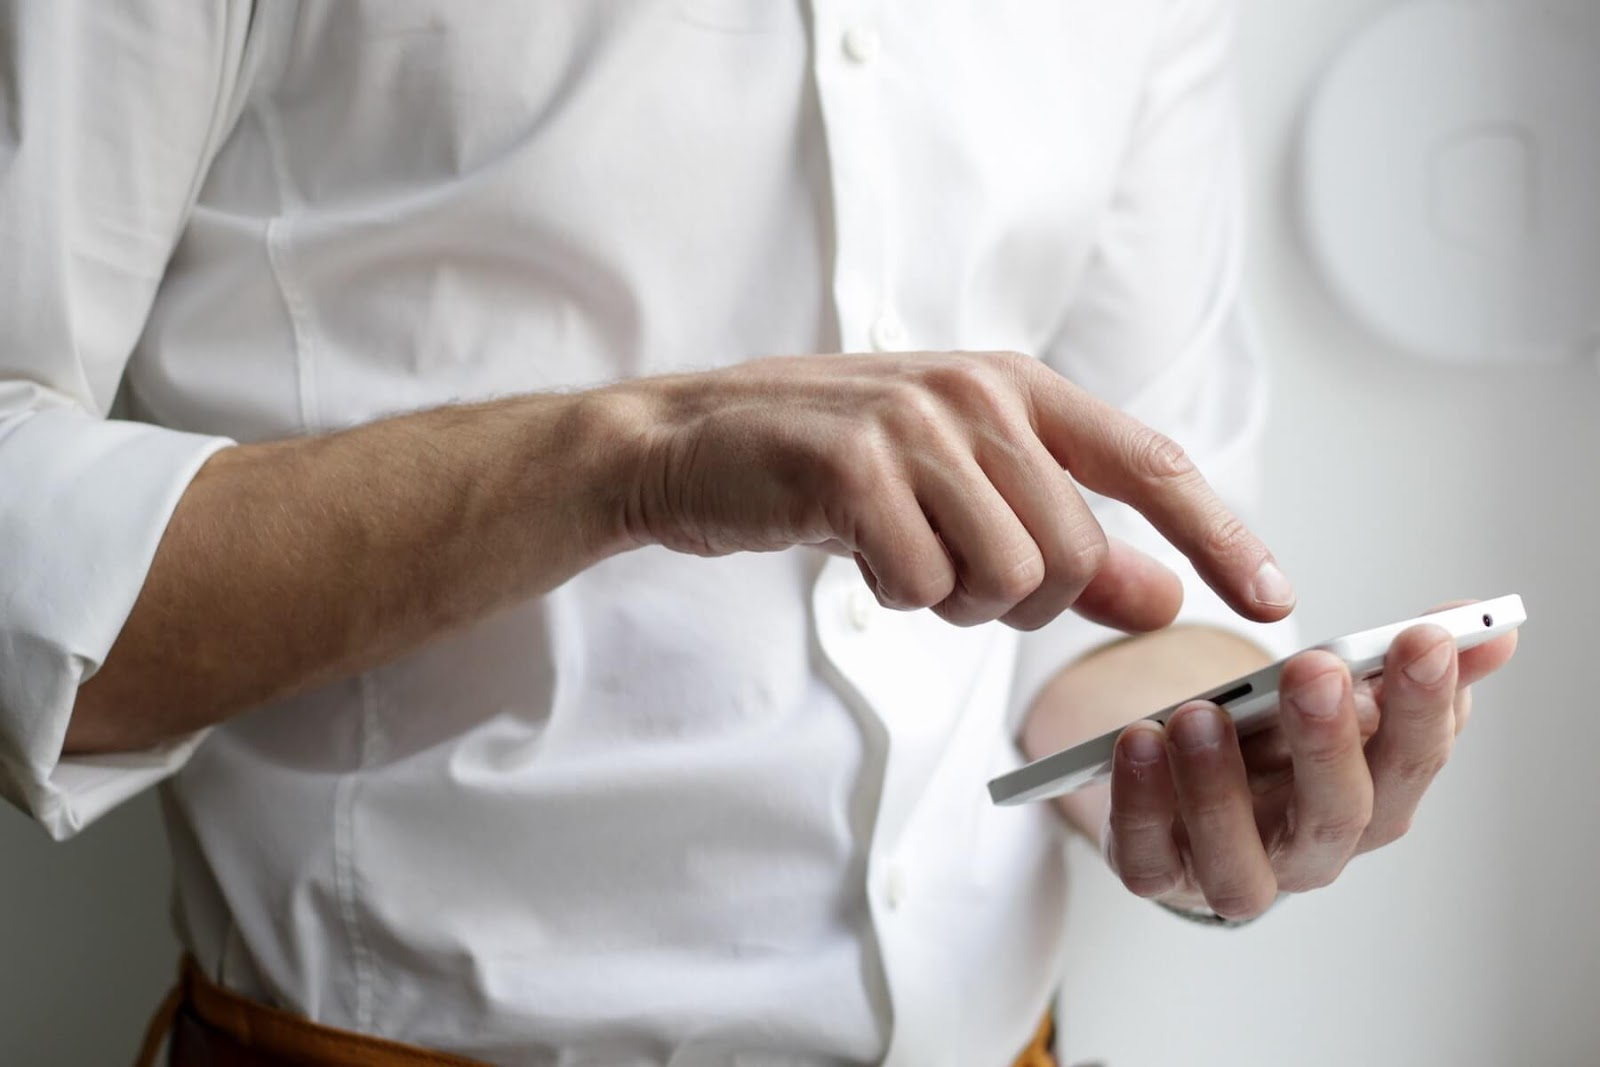 a person scrolling through the internet with their mobile phone.